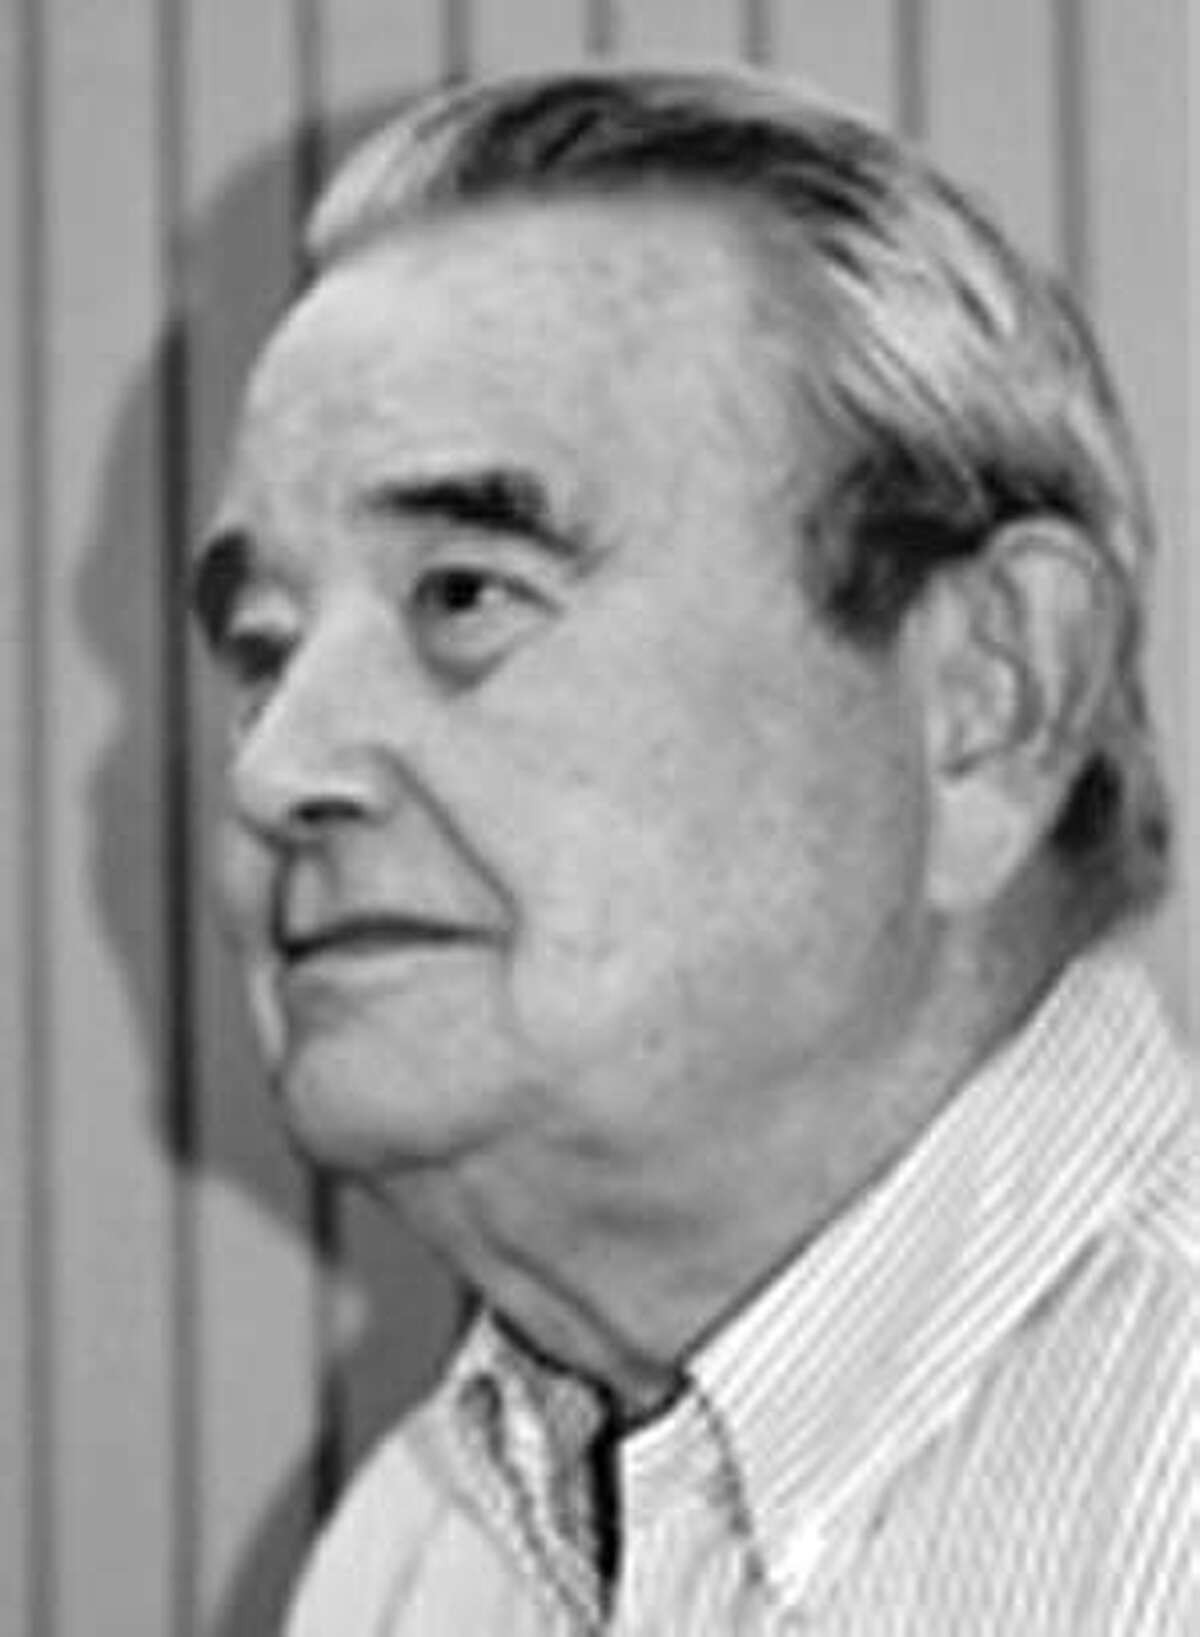 Dr. William F. Ganong, a longtime chairman of physiology at UCSF who brought international recognition to his department for its distinction in the neurosciences, died December 23 after living with prostate cancer for 17 years. Photo Courtesy of UCSF Ran on: 02-23-2008 Dr. William Fran Ganongs textbook has been translated into 18 foreign languages.